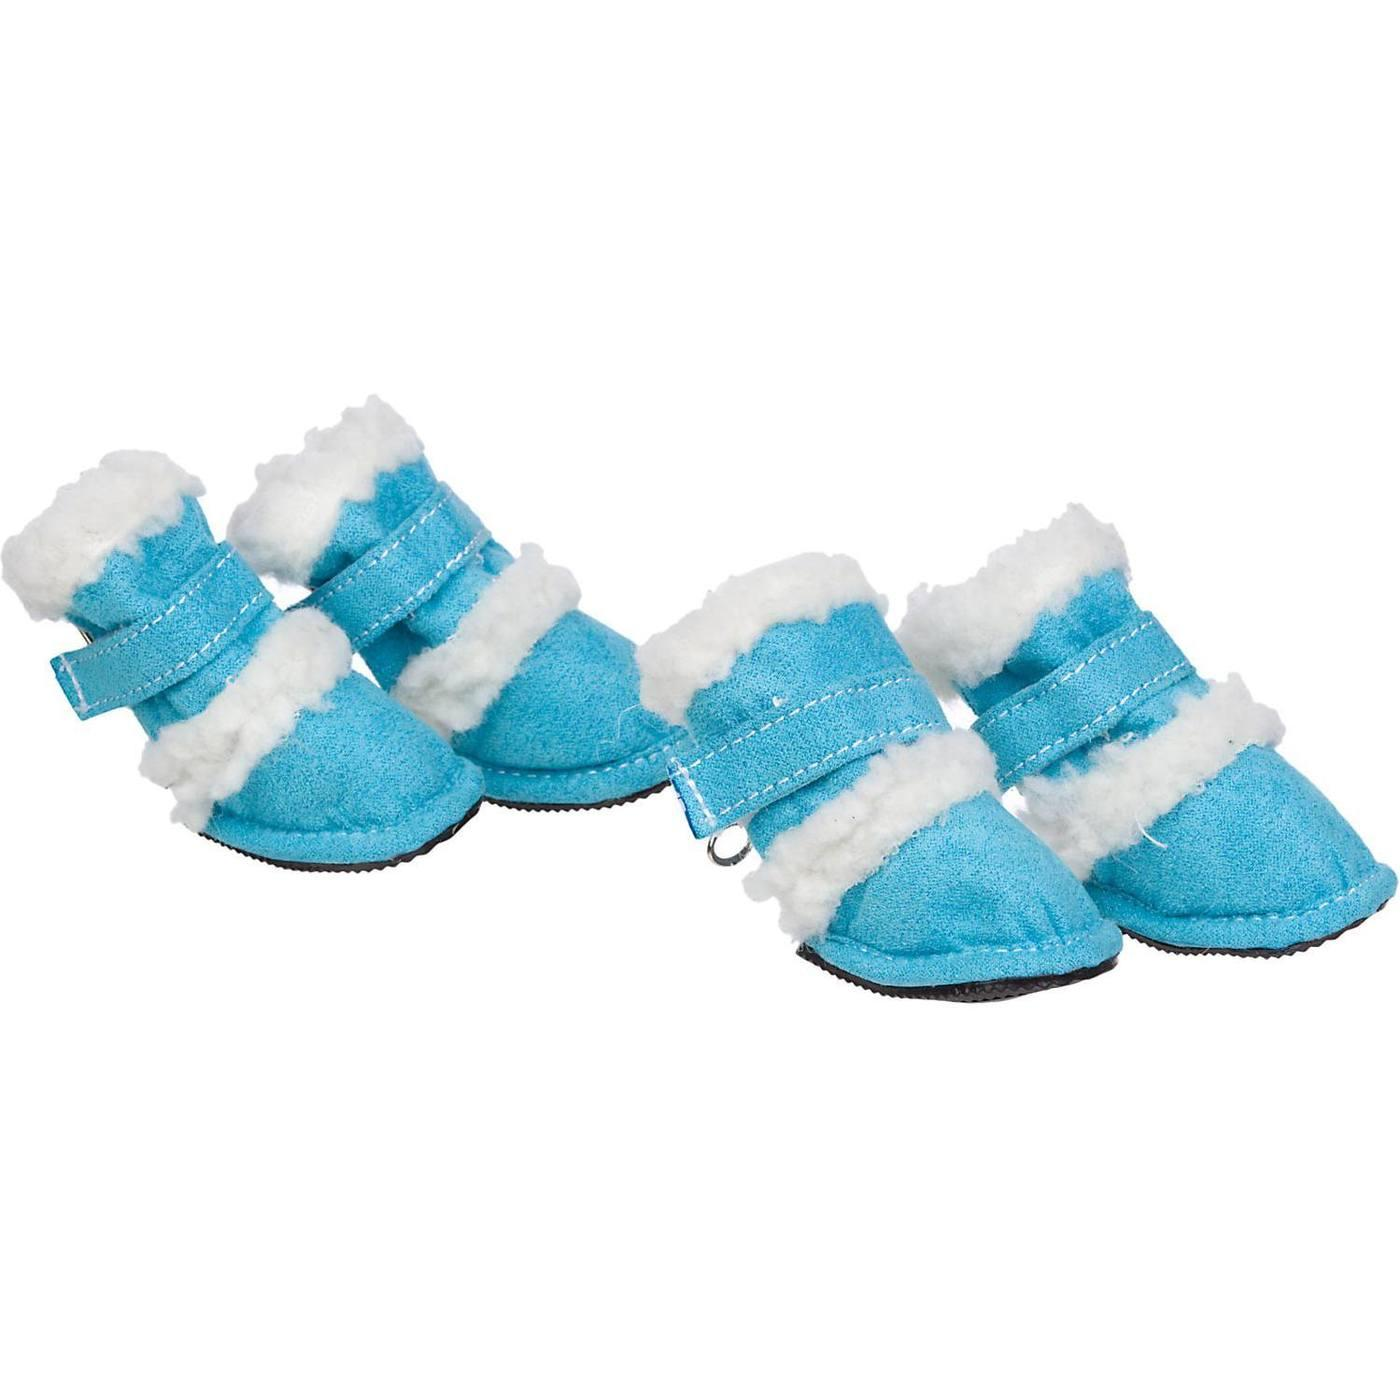 Pet Life 'Duggz' 3M Insulated Winter Fashion Dog Booties - Blue